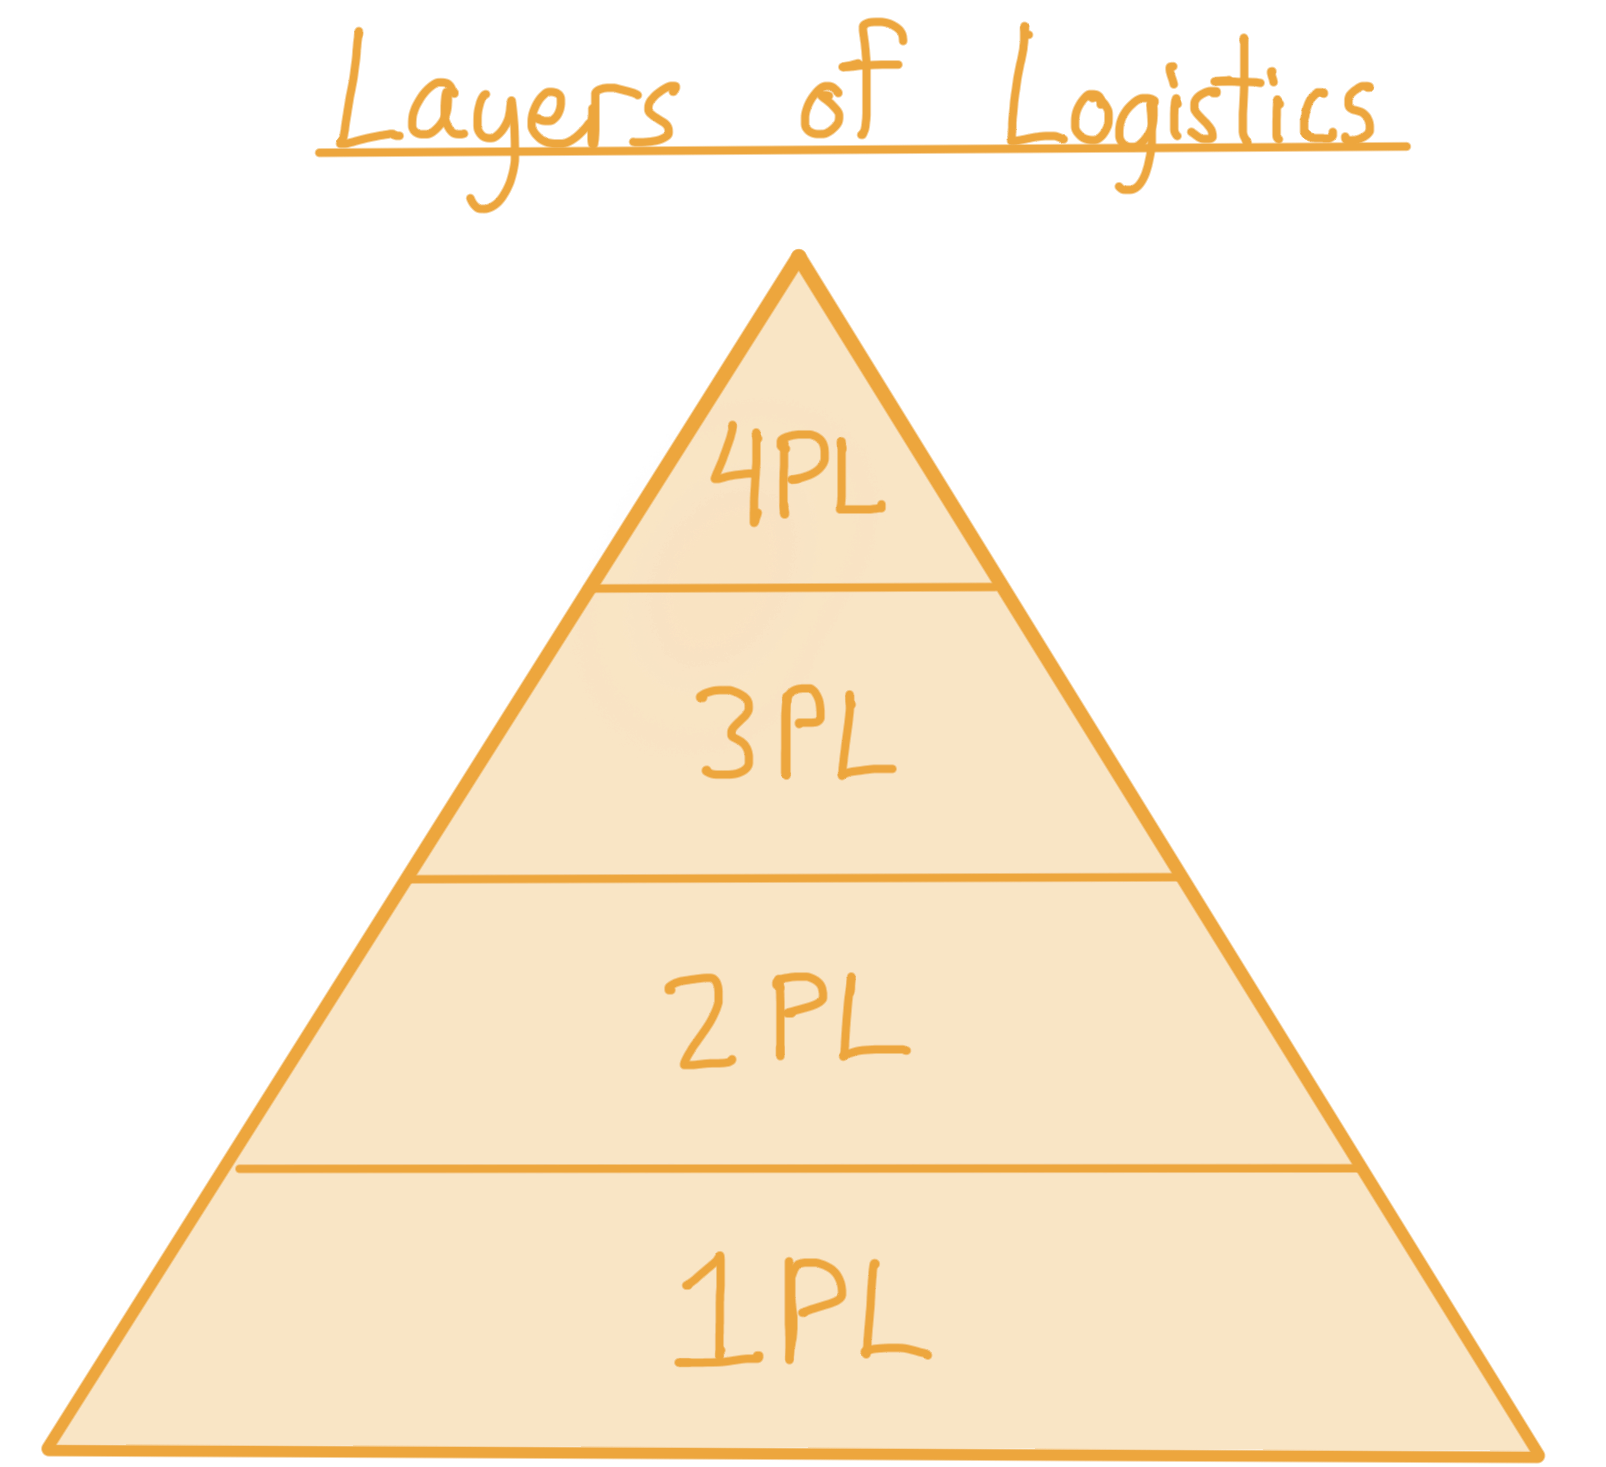 Layers of Logistics. A pyramid showing four layers, starting from the bottom: 1PL, 2PL, 3PL, 4PL.